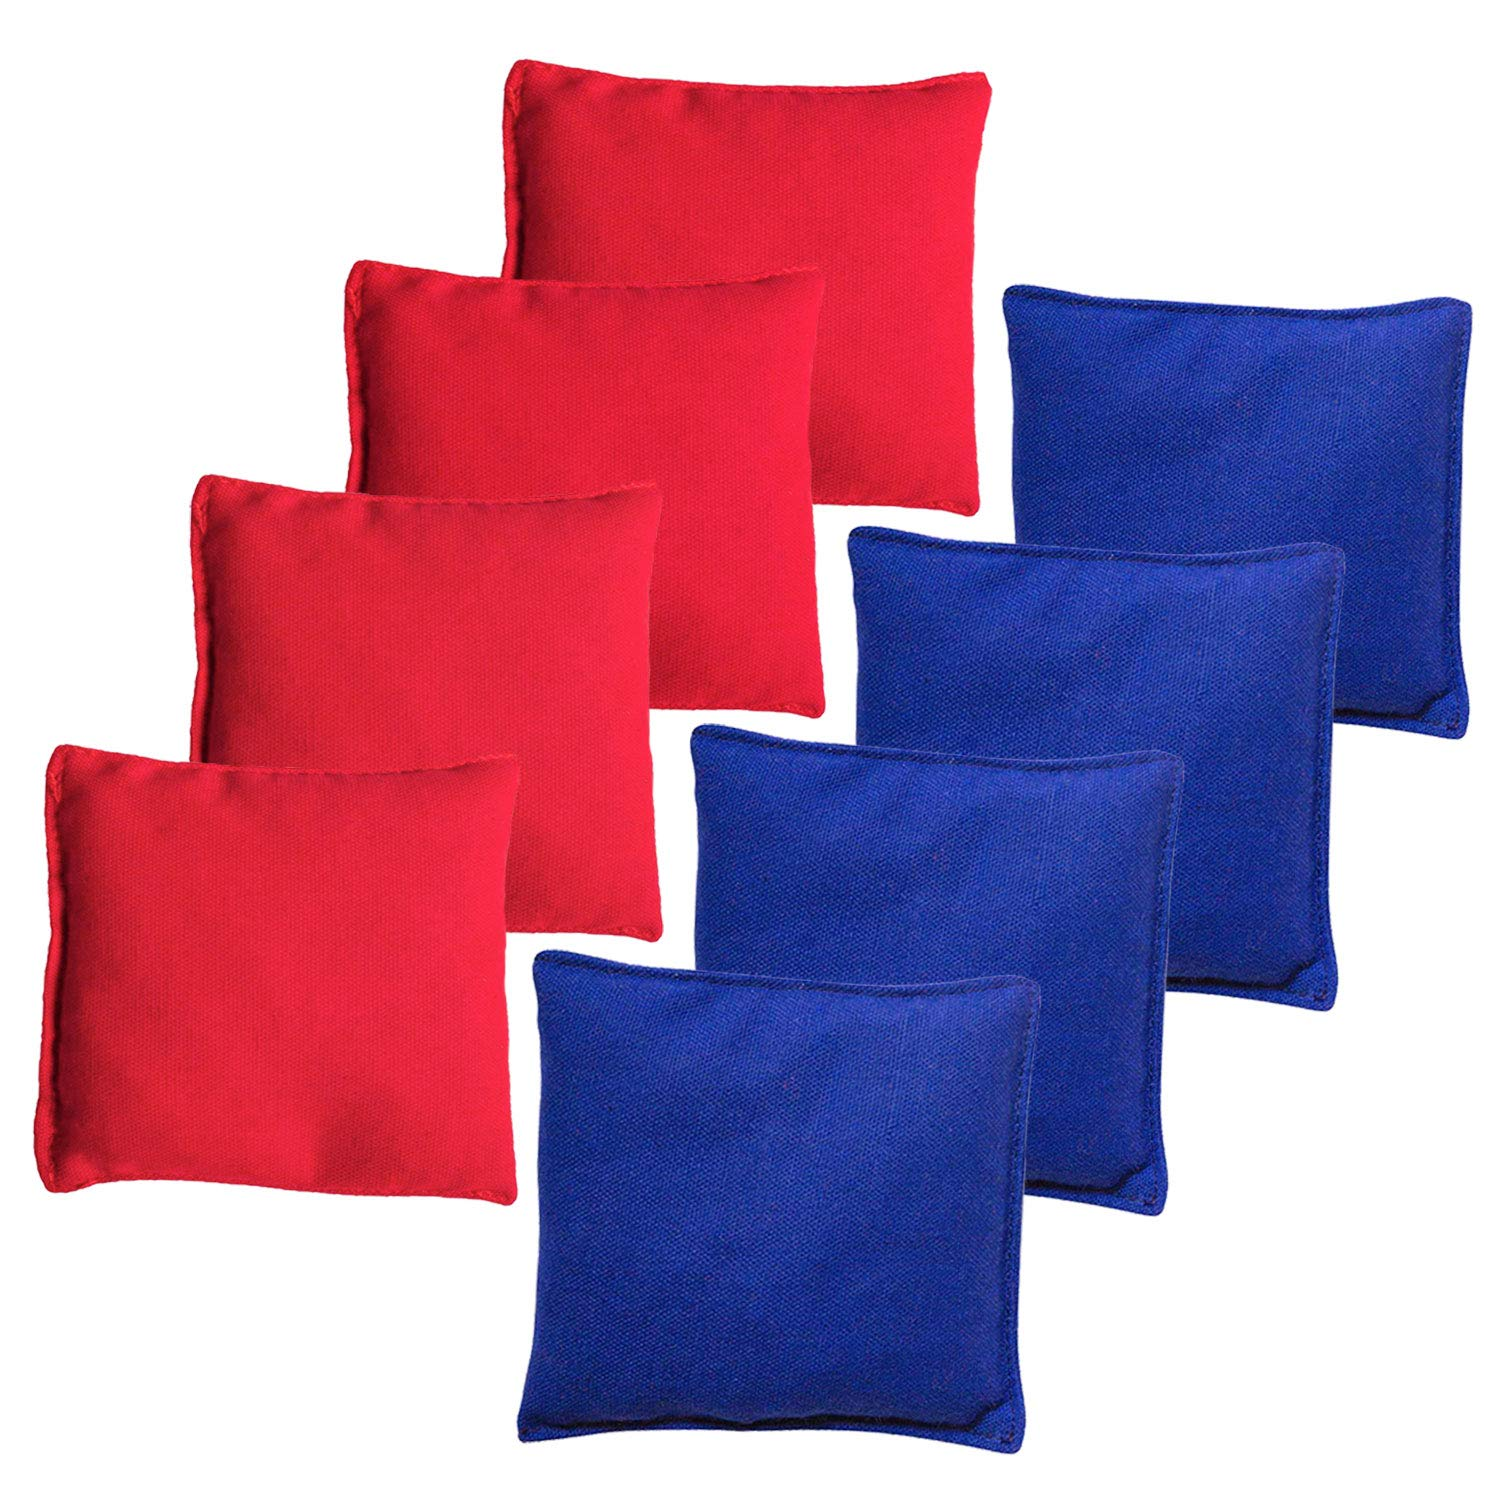 JMEXSUSS Weather Resistant Standard Corn Hole Bags, Set of 8 Regulation Cornhole Bags for Tossing Game (Red/Blue) by JMEXSUSS